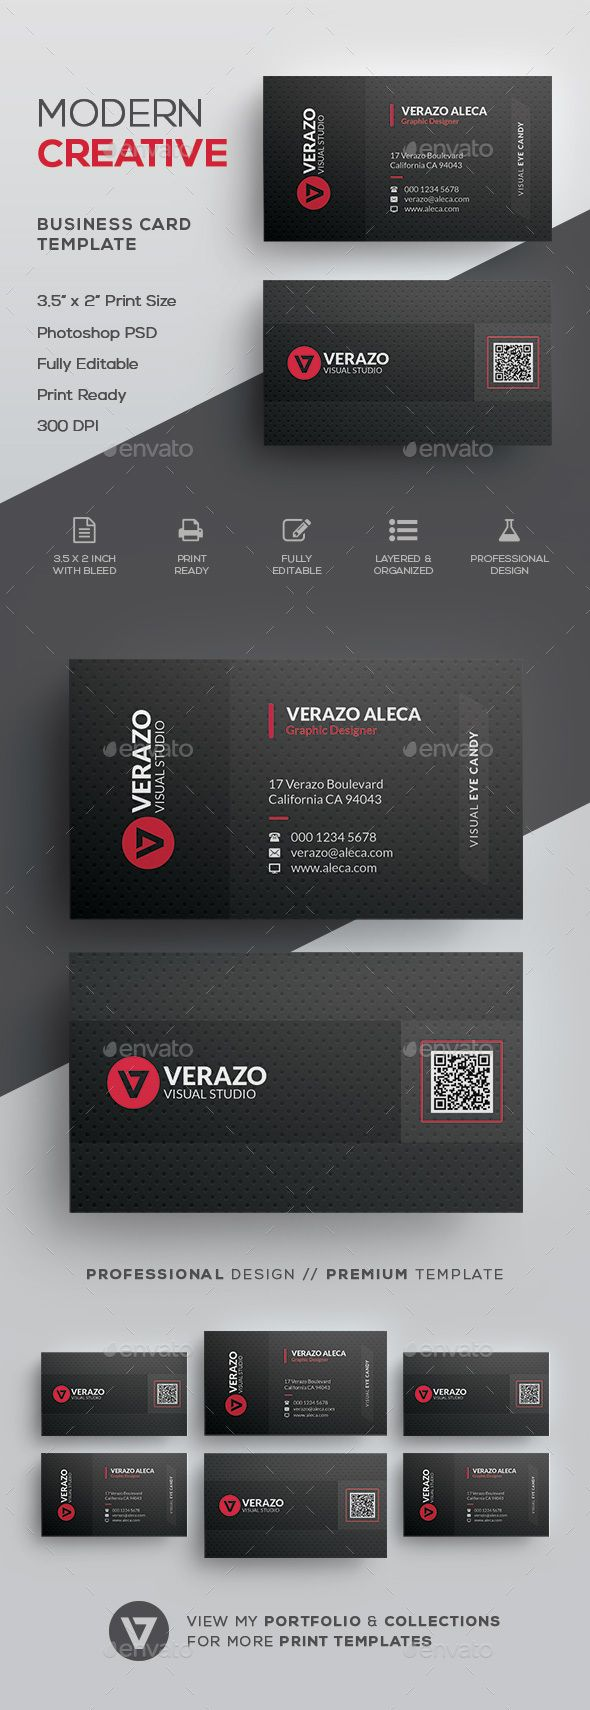 Qr code business card qr codes card templates and business cards qr code business card by verazo need more high quality business card view my business colourmoves